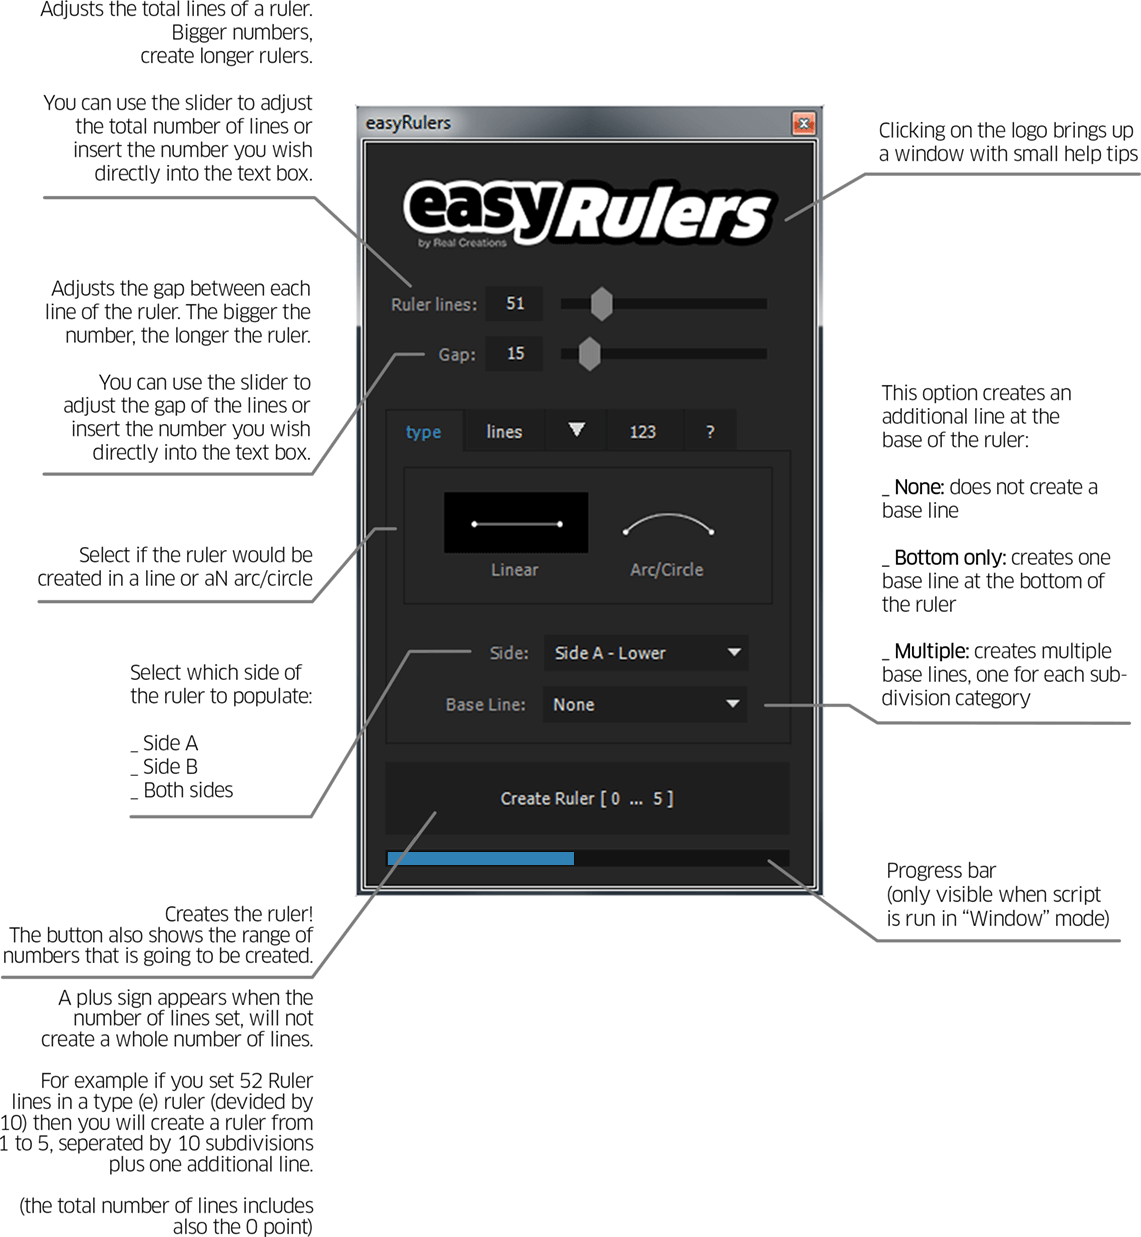 easyRulers - user interface